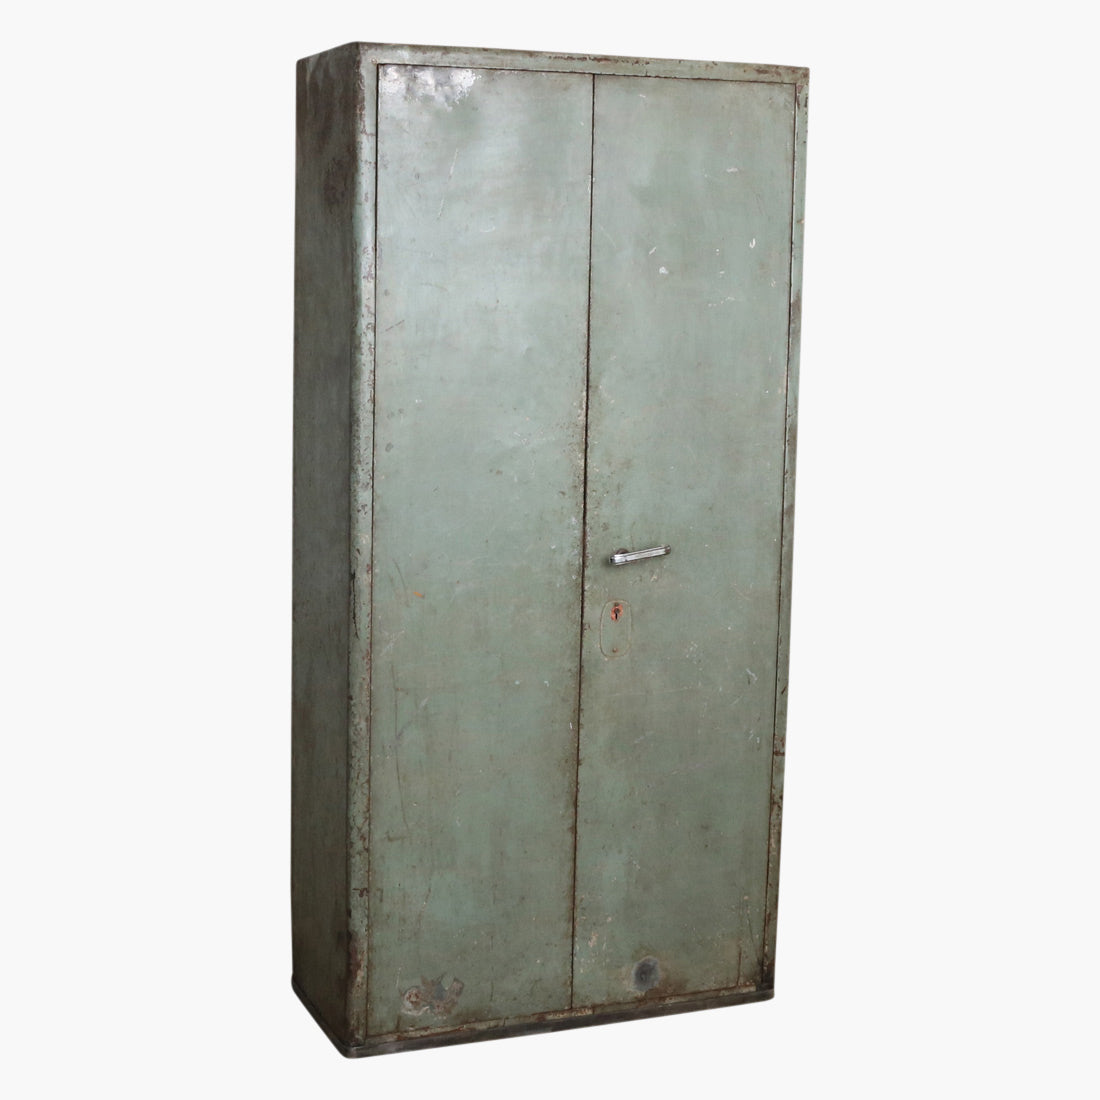 Green iron safe 21 lockers inside